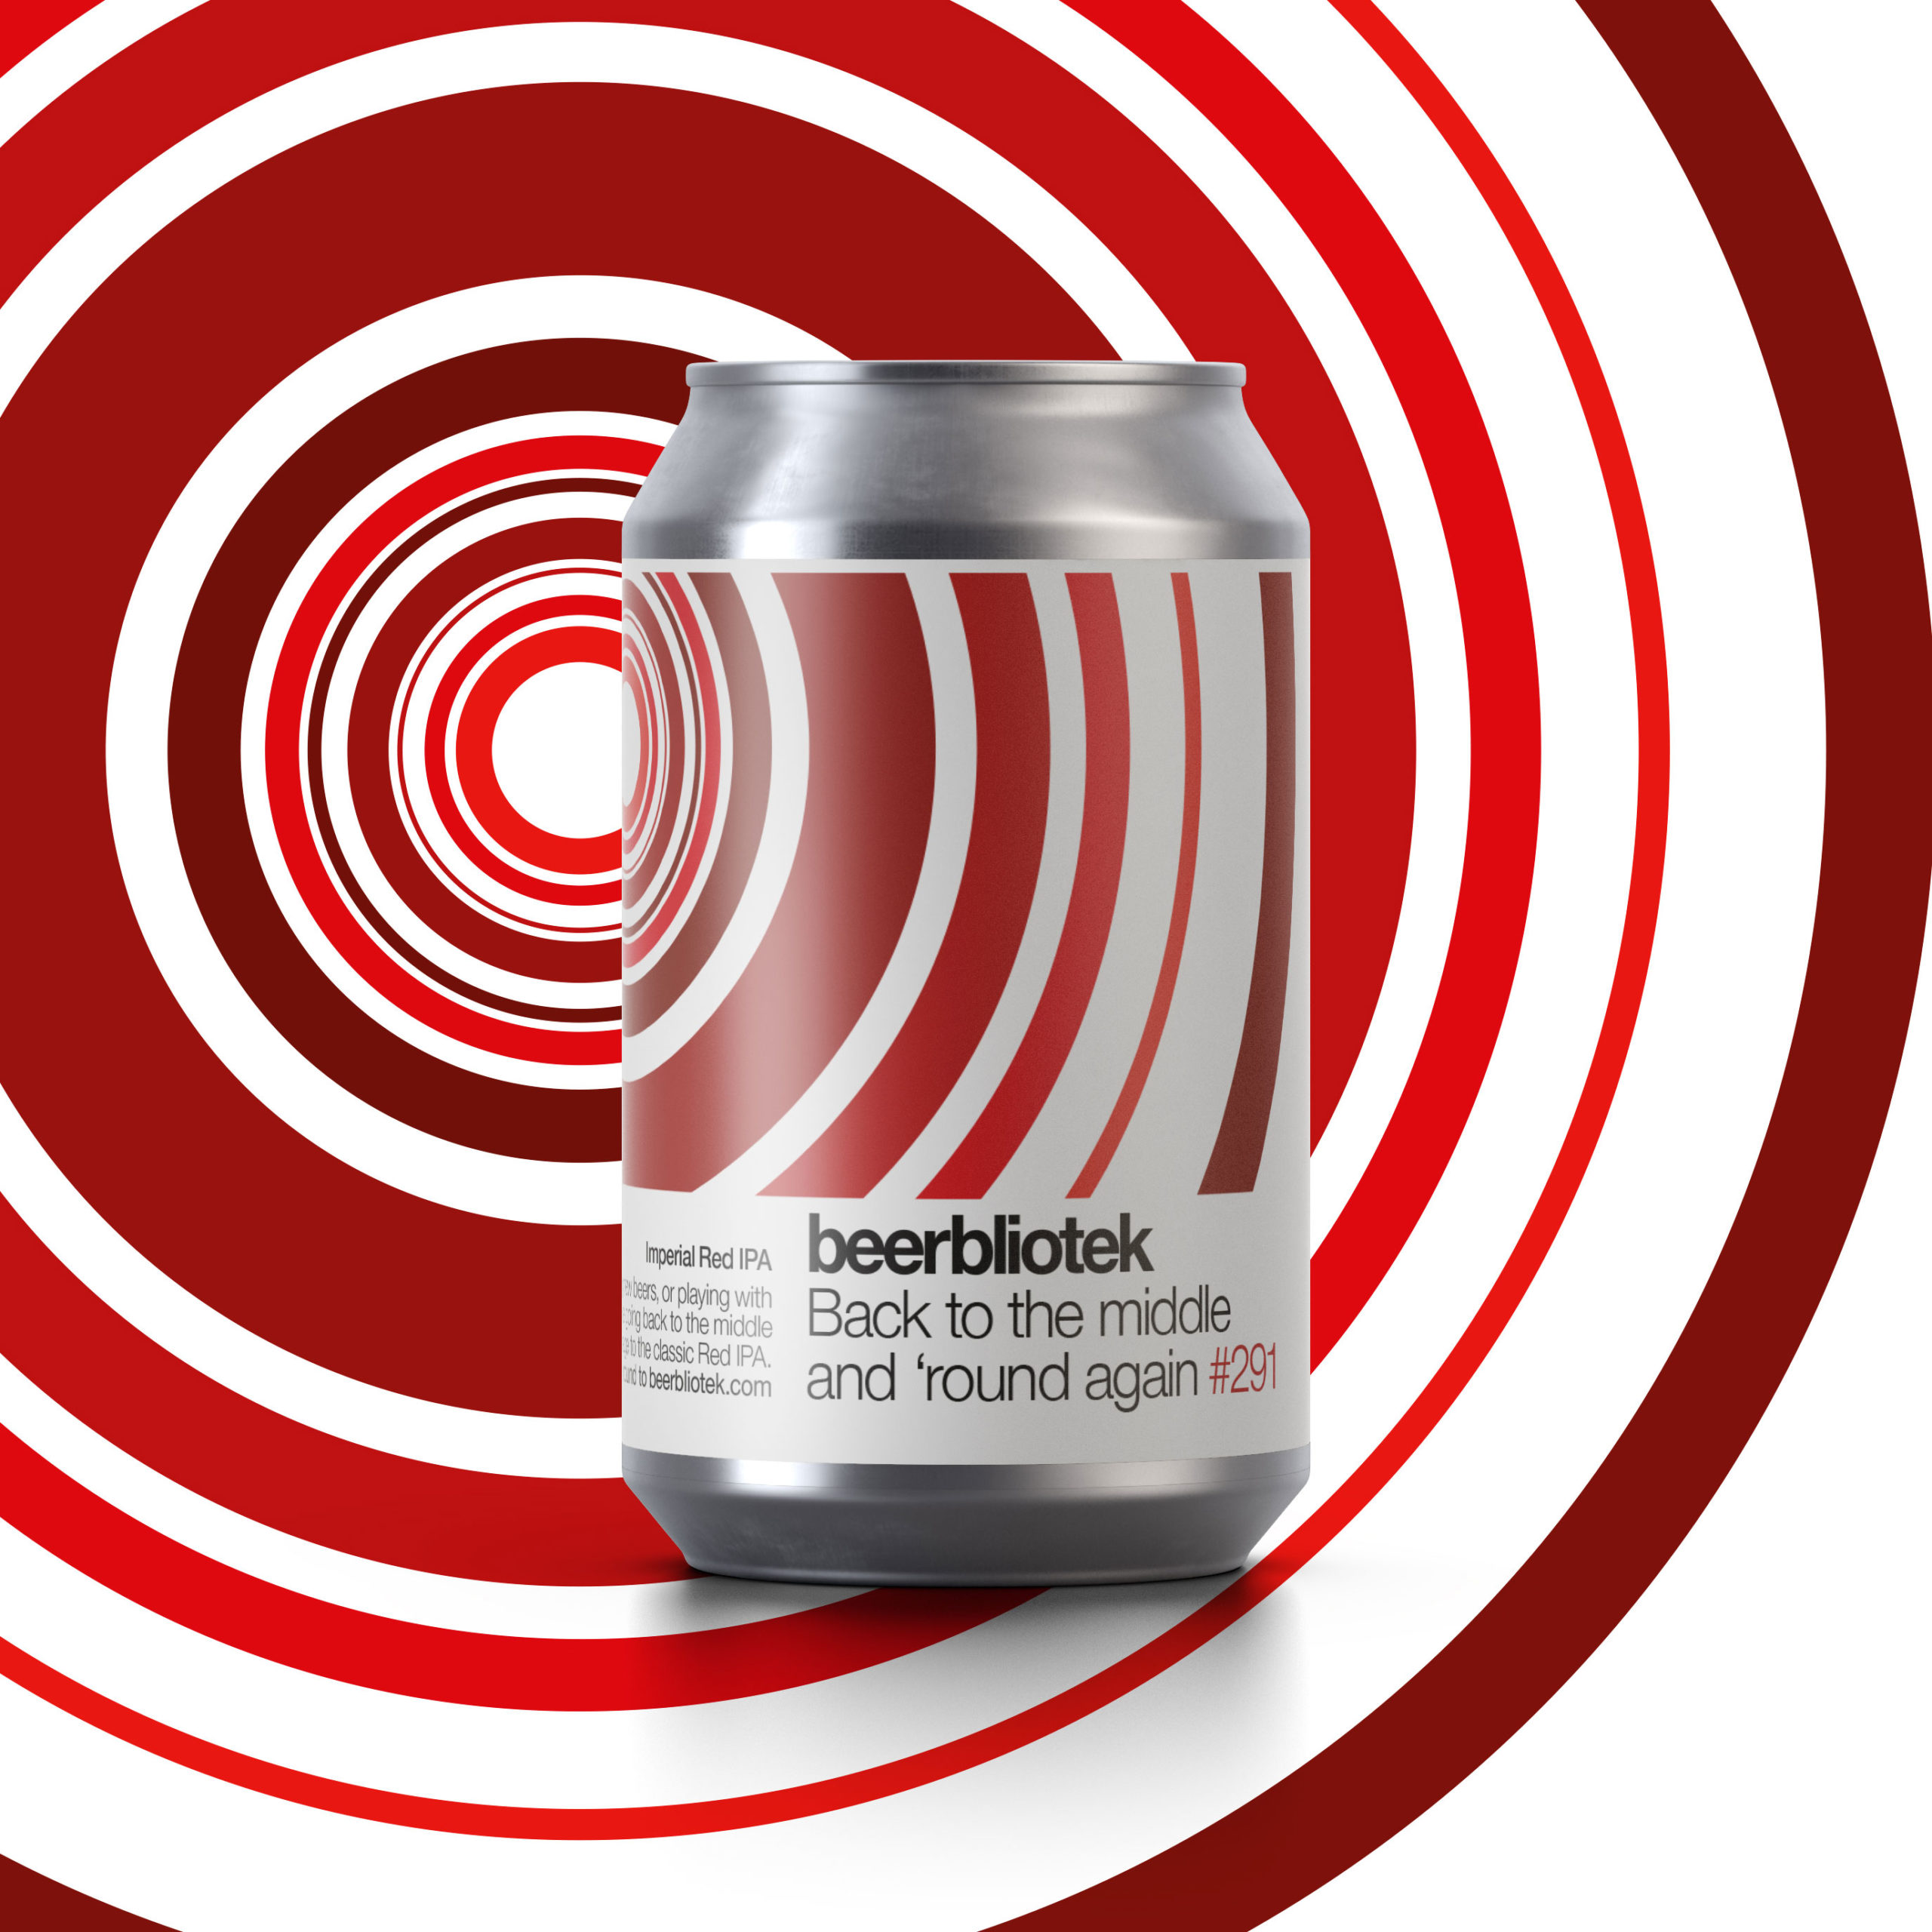 A can packshot of Back to the middle and 'round again, an Imperial Red IPA brewed in Gothenburg, by Swedish Craft Brewery Beerbliotek.